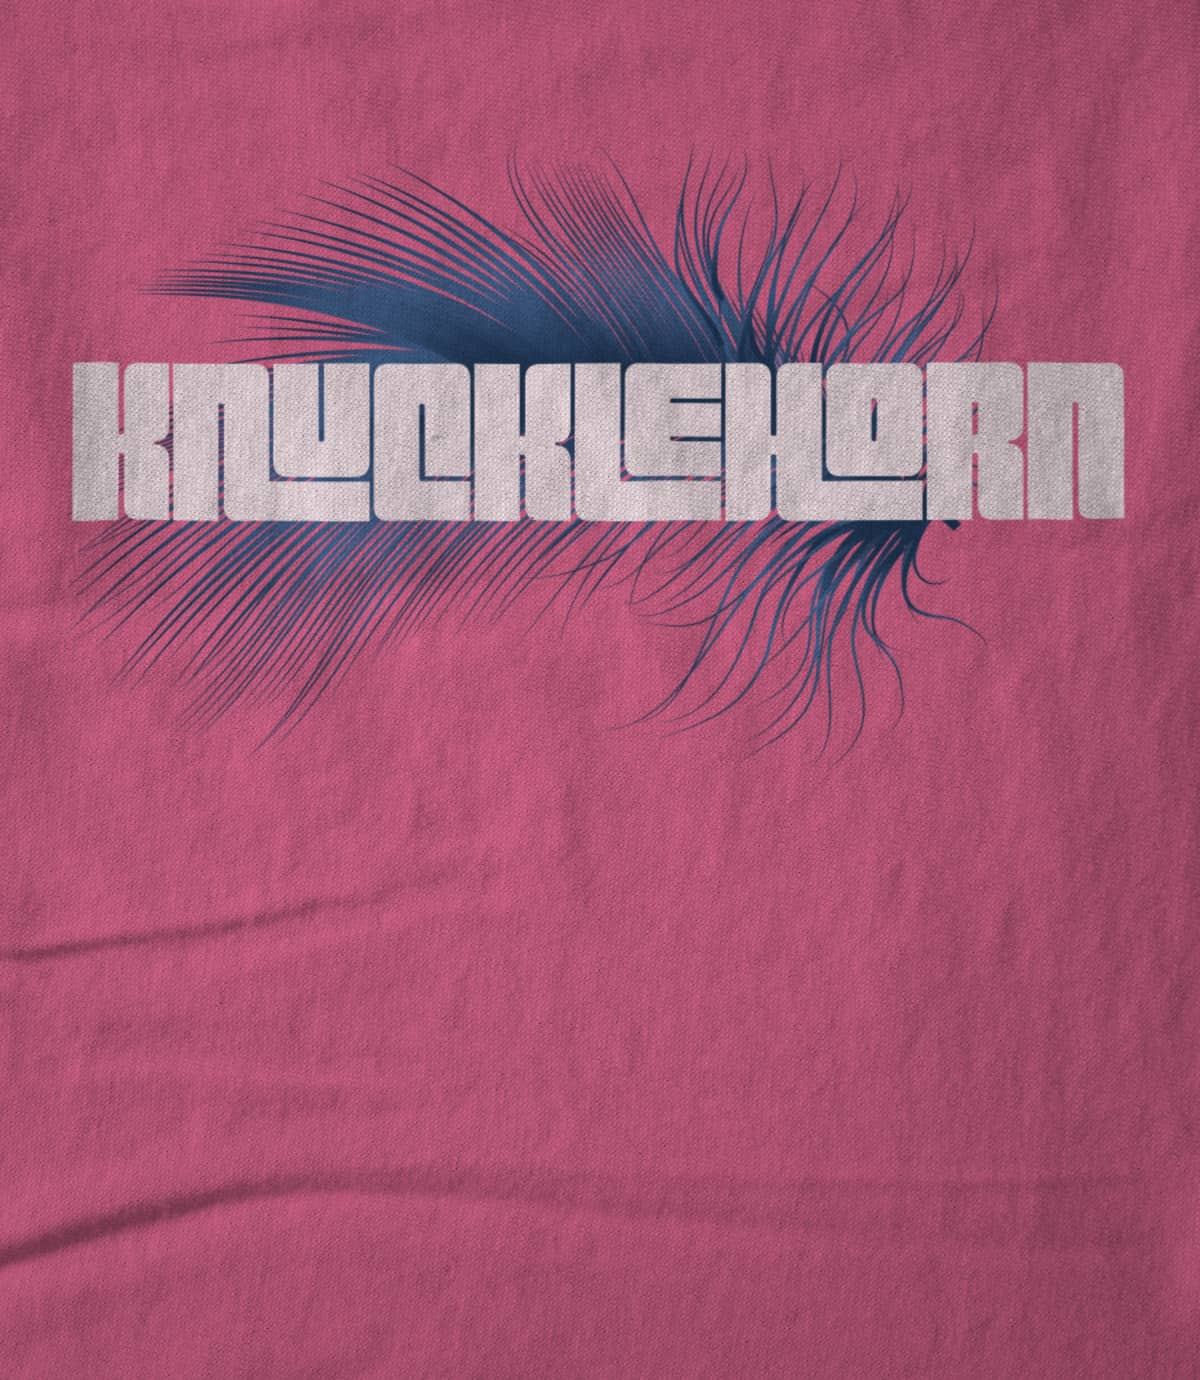 Knucklehorn